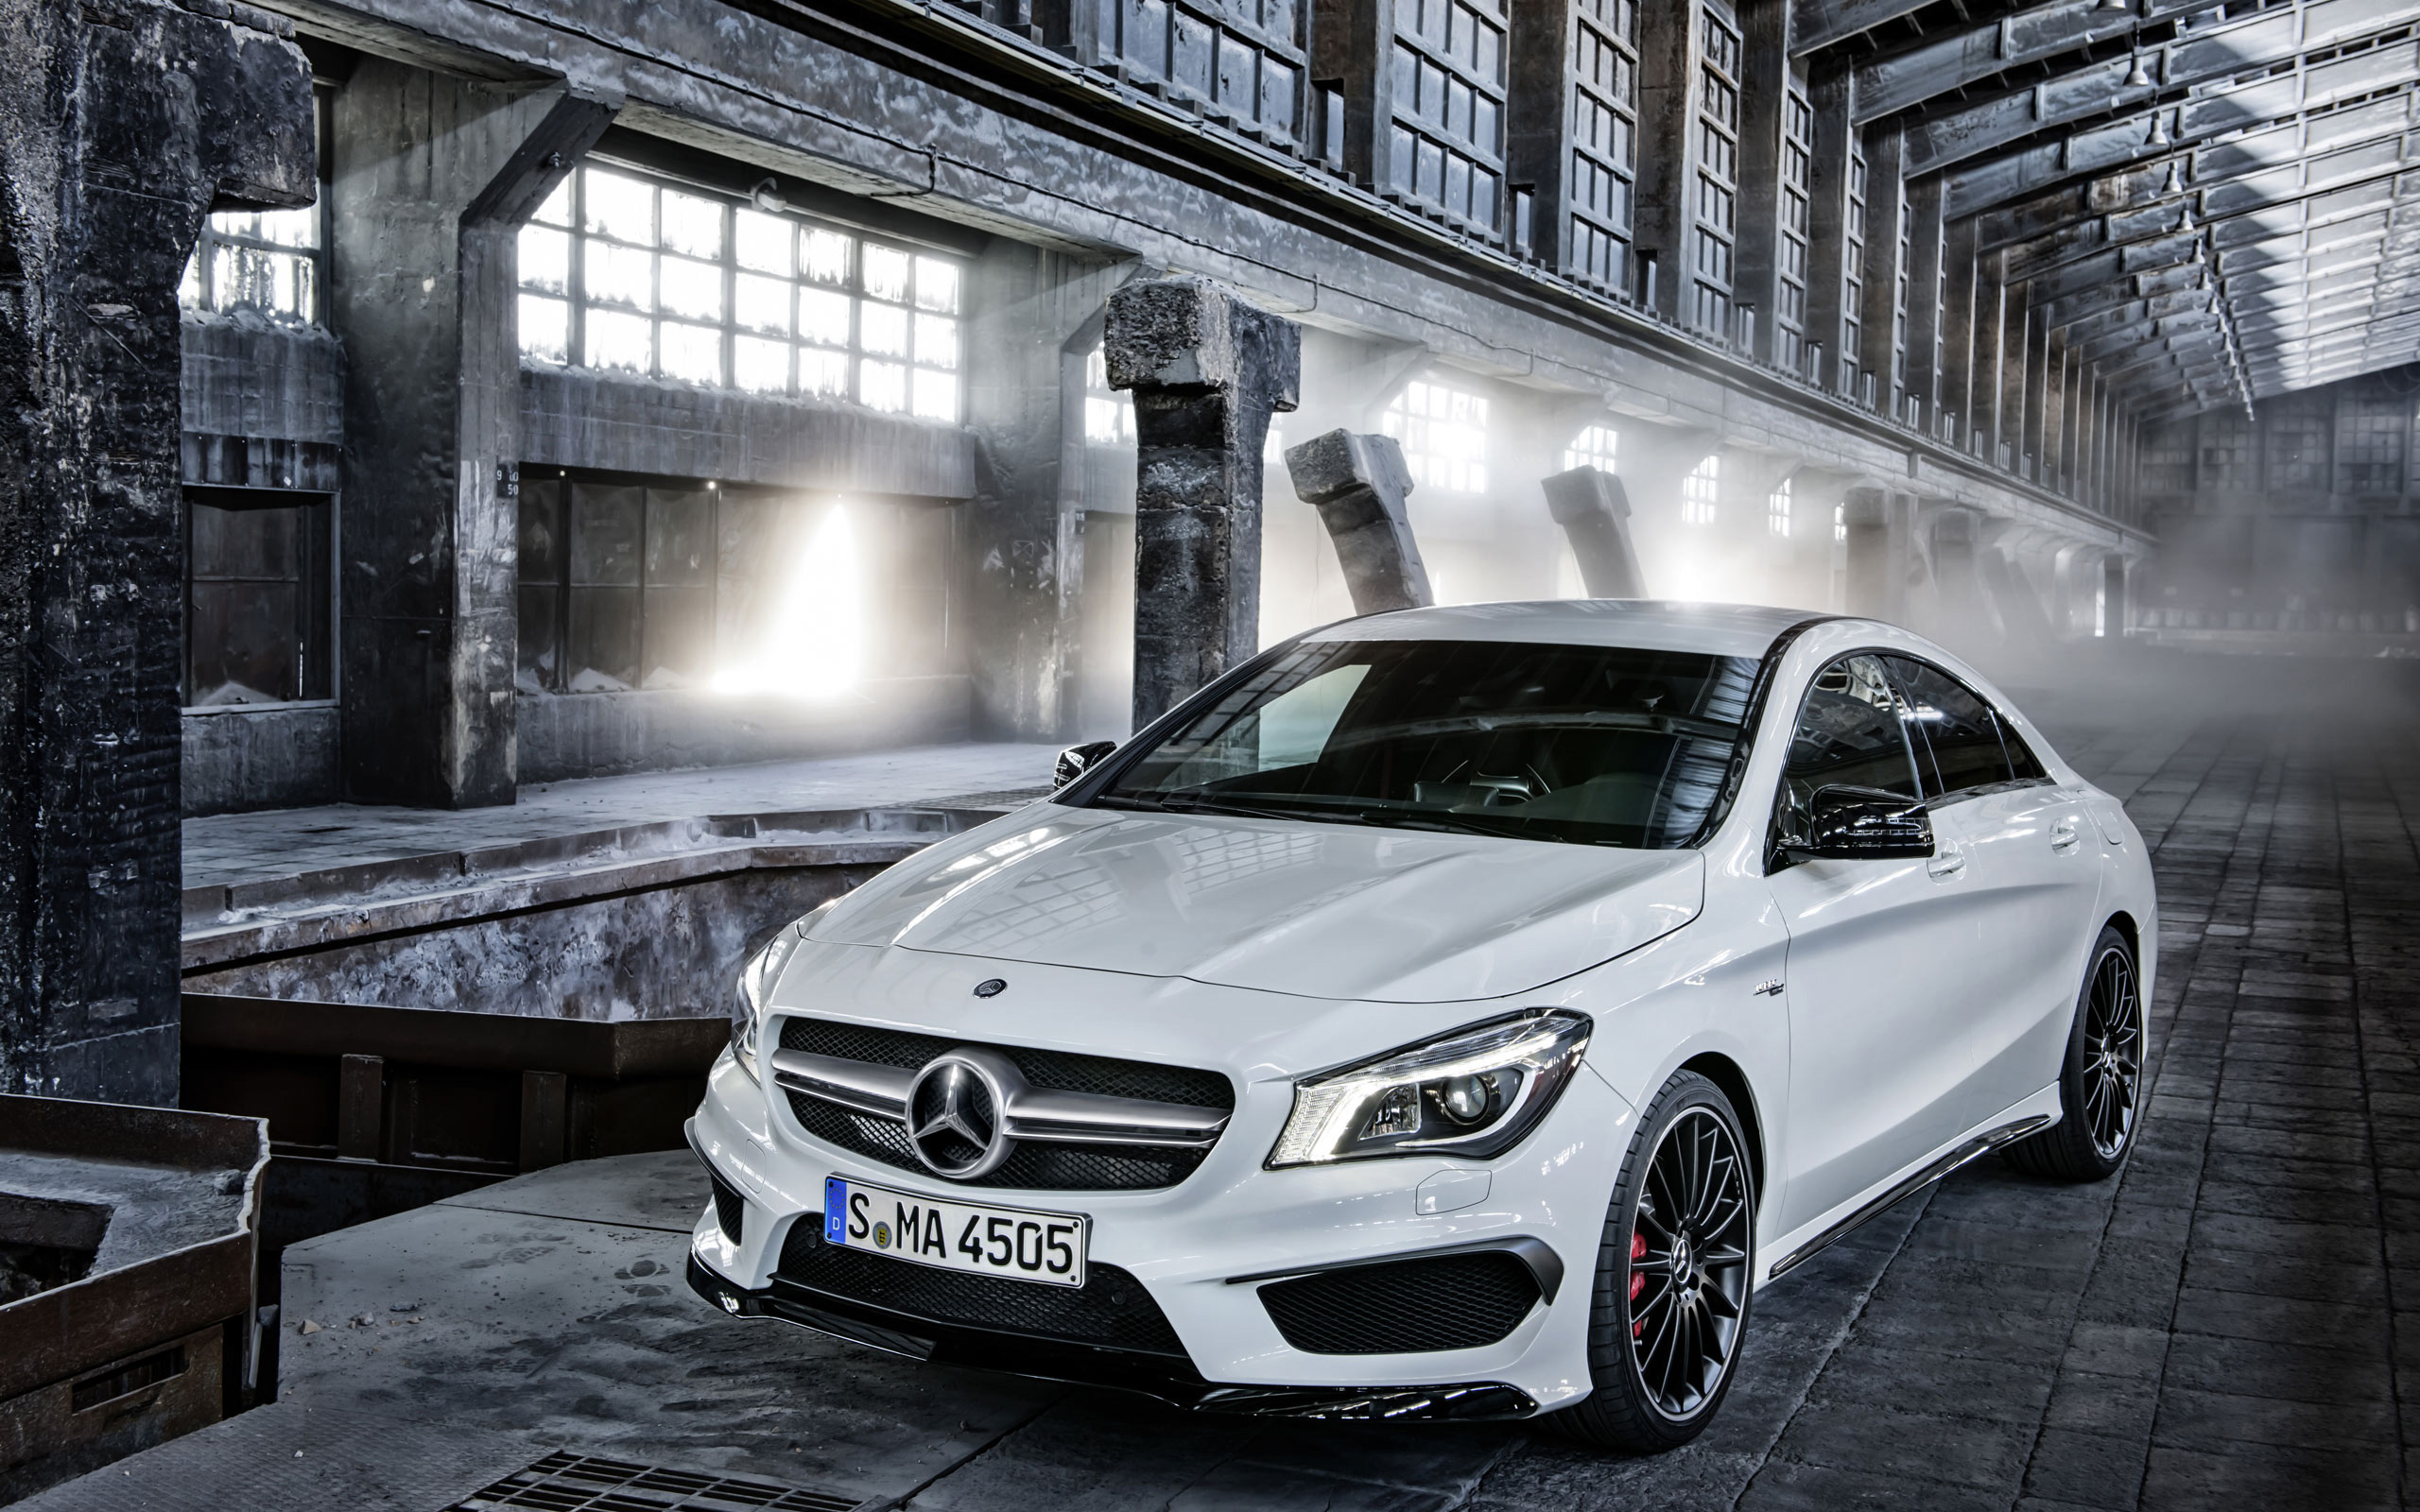 2014 Mercedes Benz Cla45 Amg Wallpaper Hd Car Wallpapers Id 3362